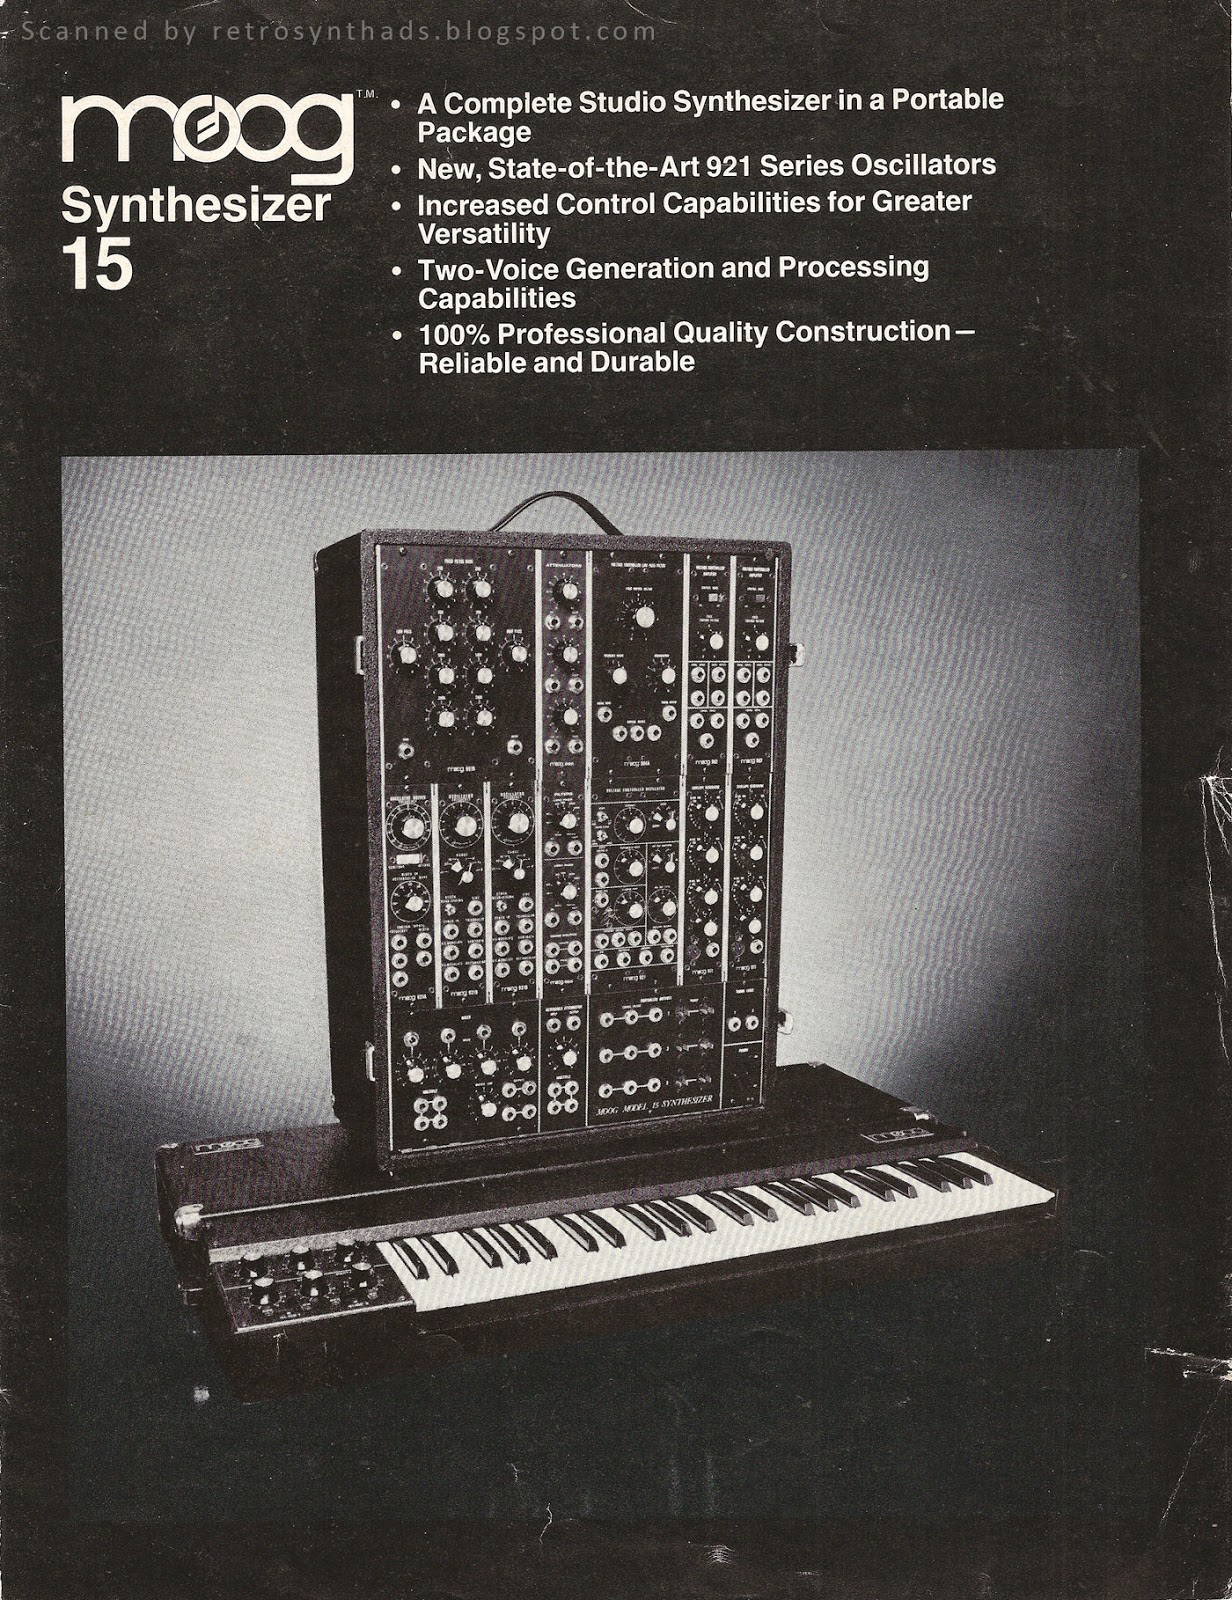 http://retrosynthads.blogspot.ca/2014/05/moog-synthesizer-15-modular-system-six.html